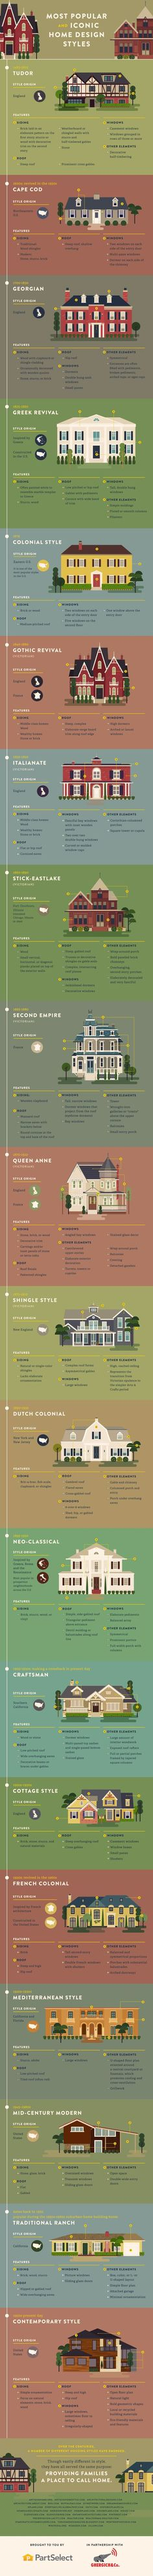 All about every single popular and iconic home exterior style. Have you ever wondered what kind of house you live in? Check out this visual guide to learn all about your house's history, design style, and characteristics. Visit In The New House Designs to see the full guide.